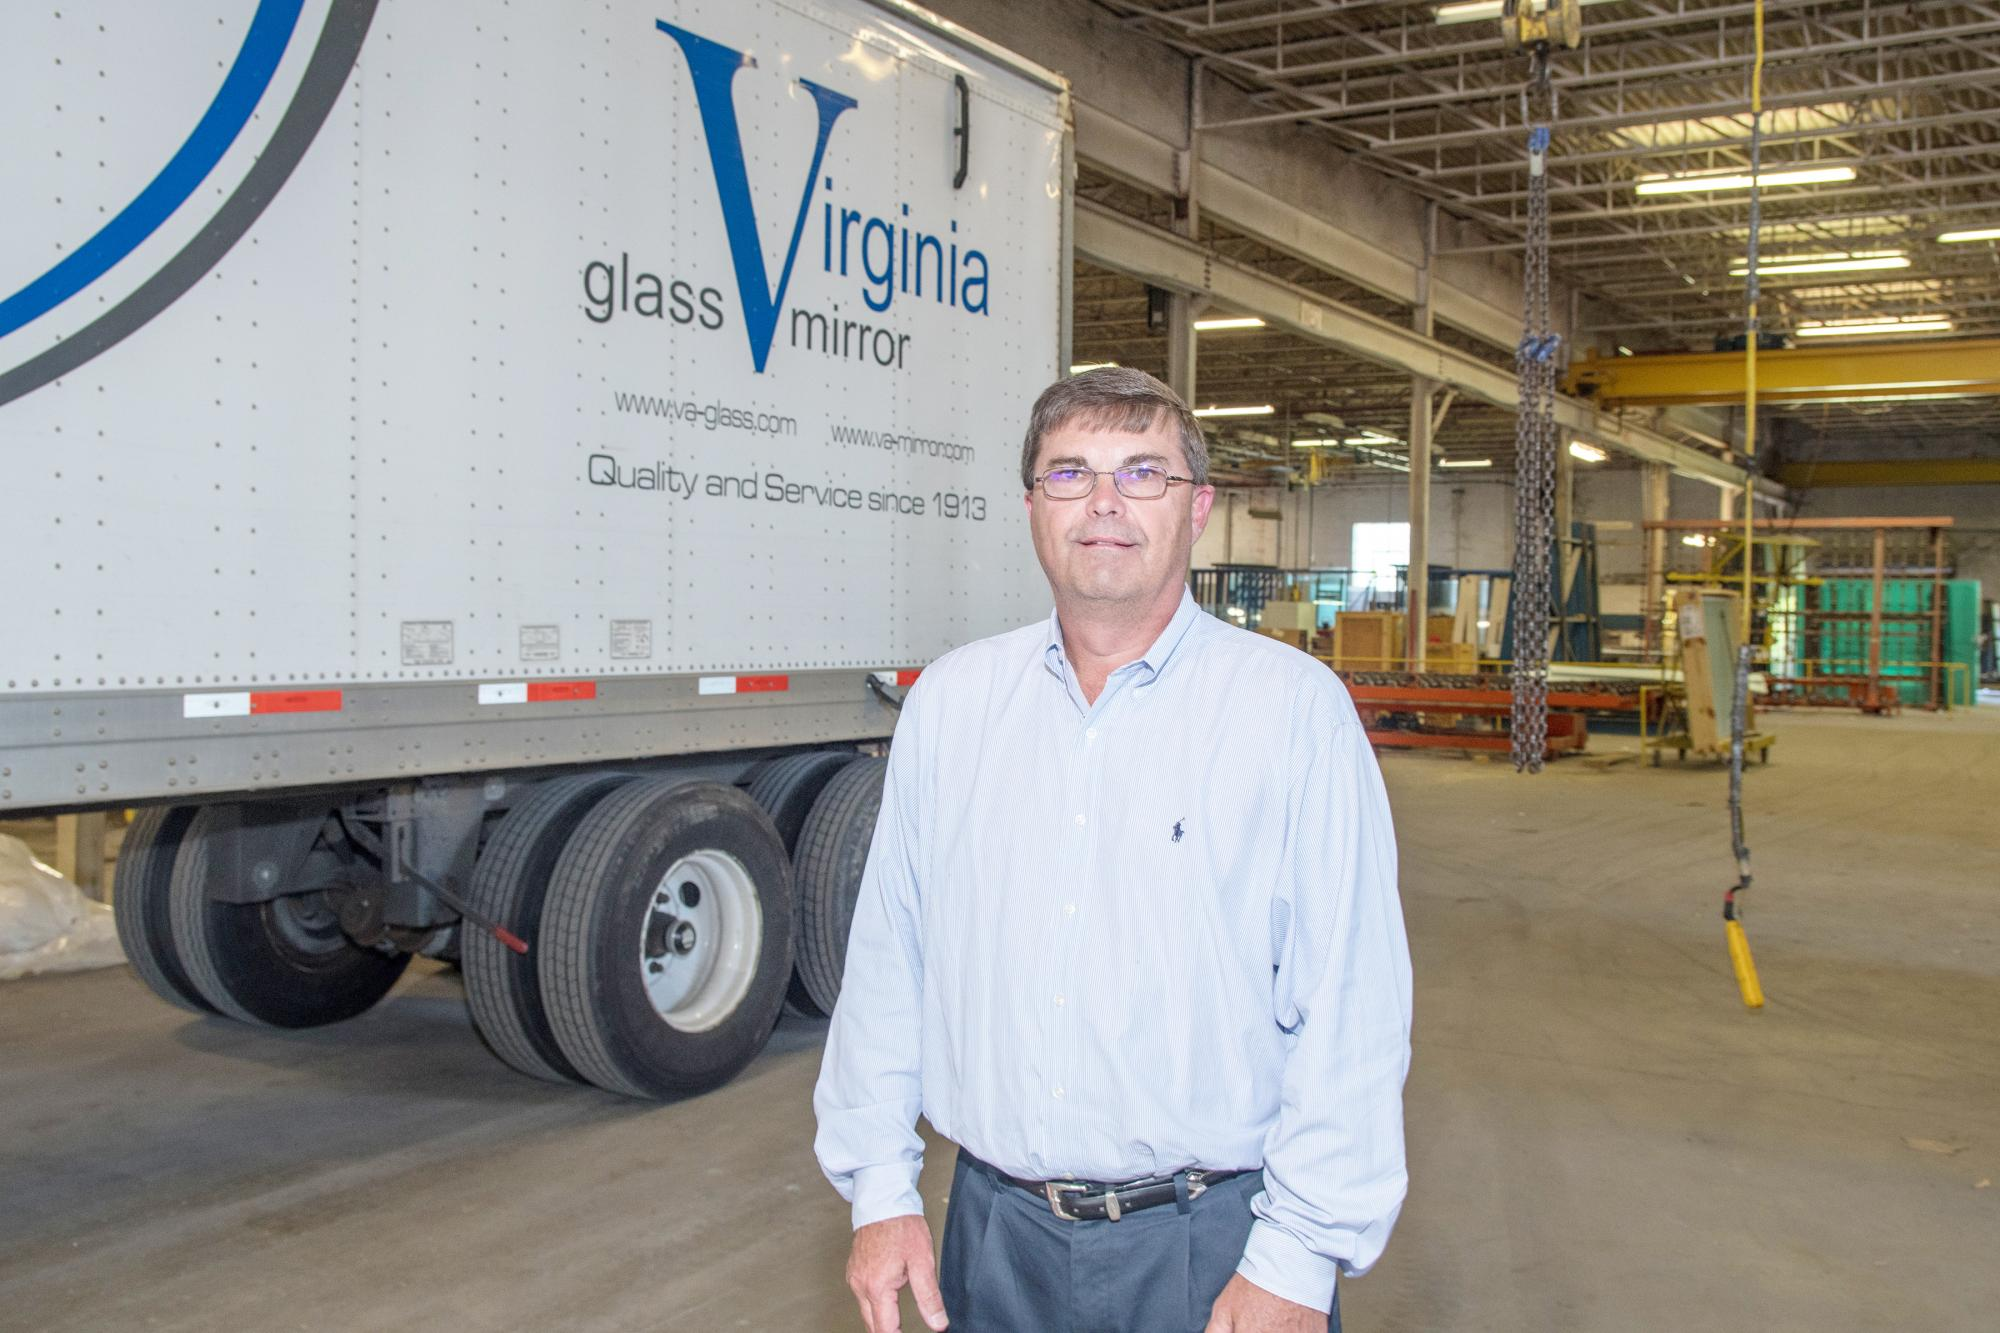 L.W. Deal, Vice President of Administration Virginia Glass Products Corp., Virginia Mirror Company Inc.